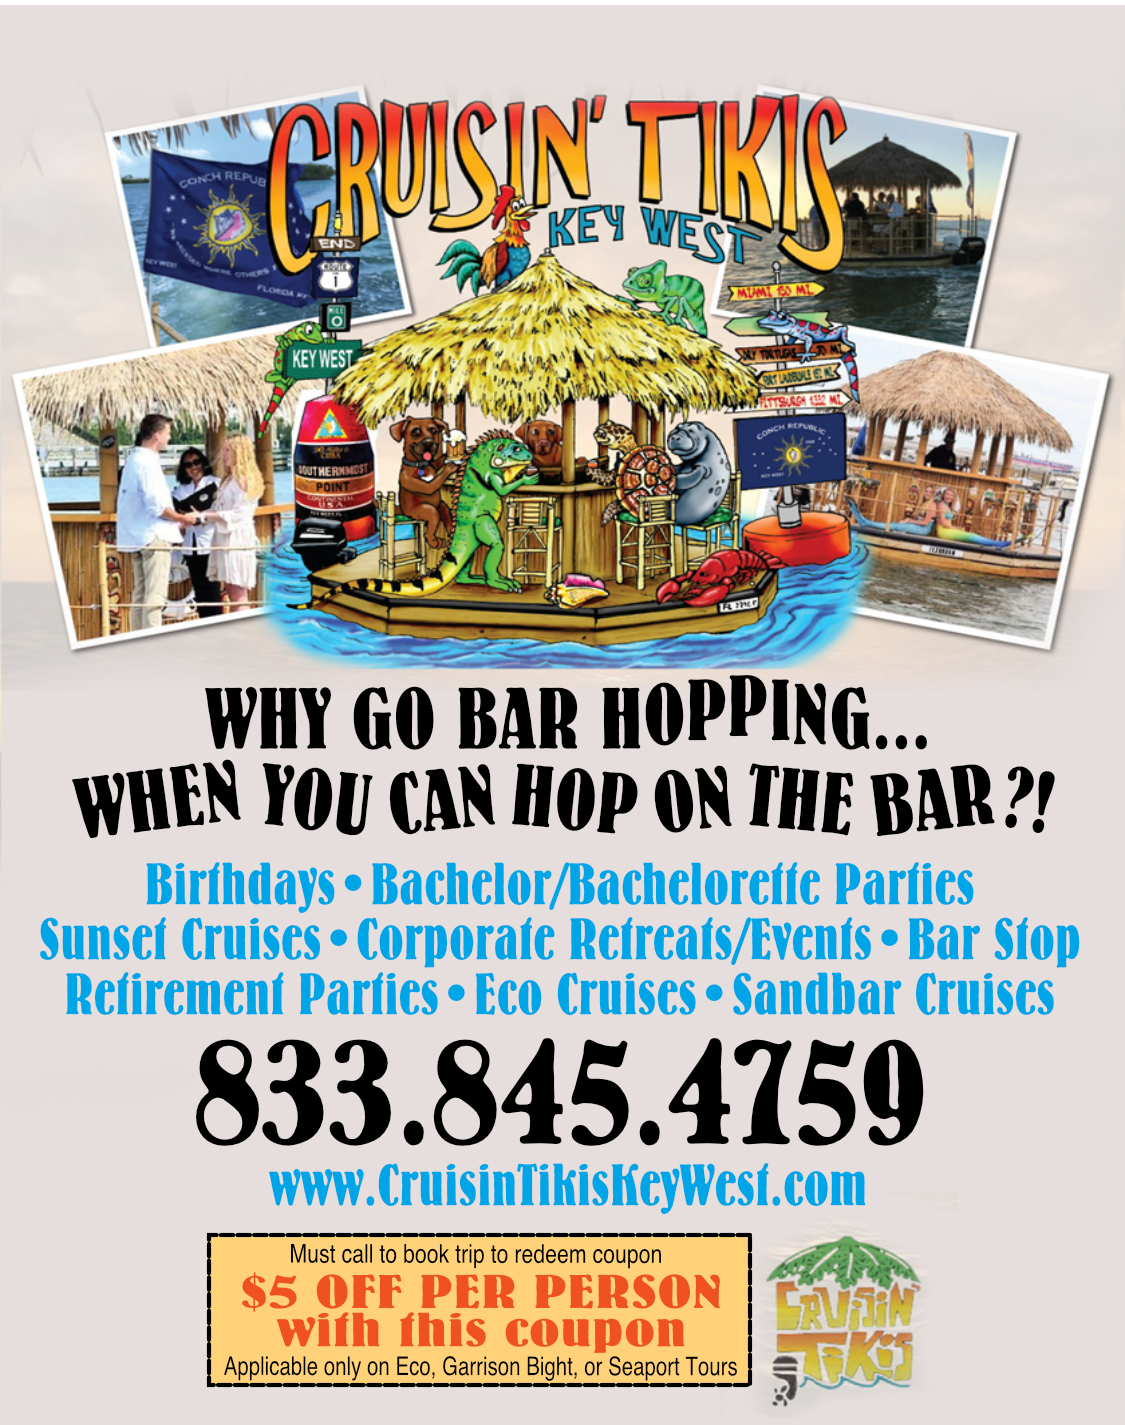 Key West discounts provided by free coupons which you can print out.